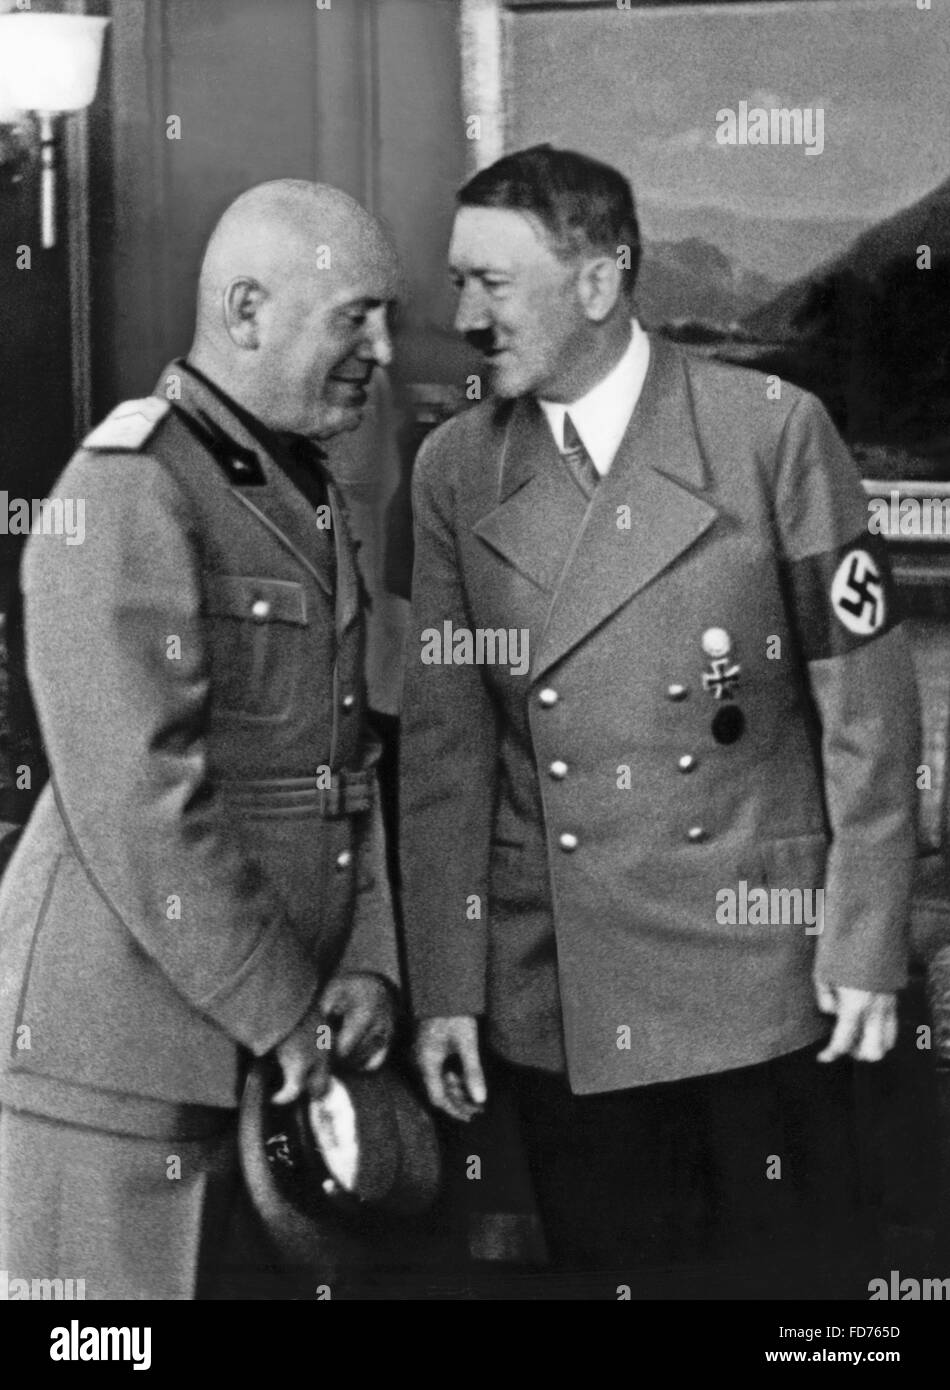 Benito Mussolini with Adolf Hitler in Munich, 1938 - Stock Image